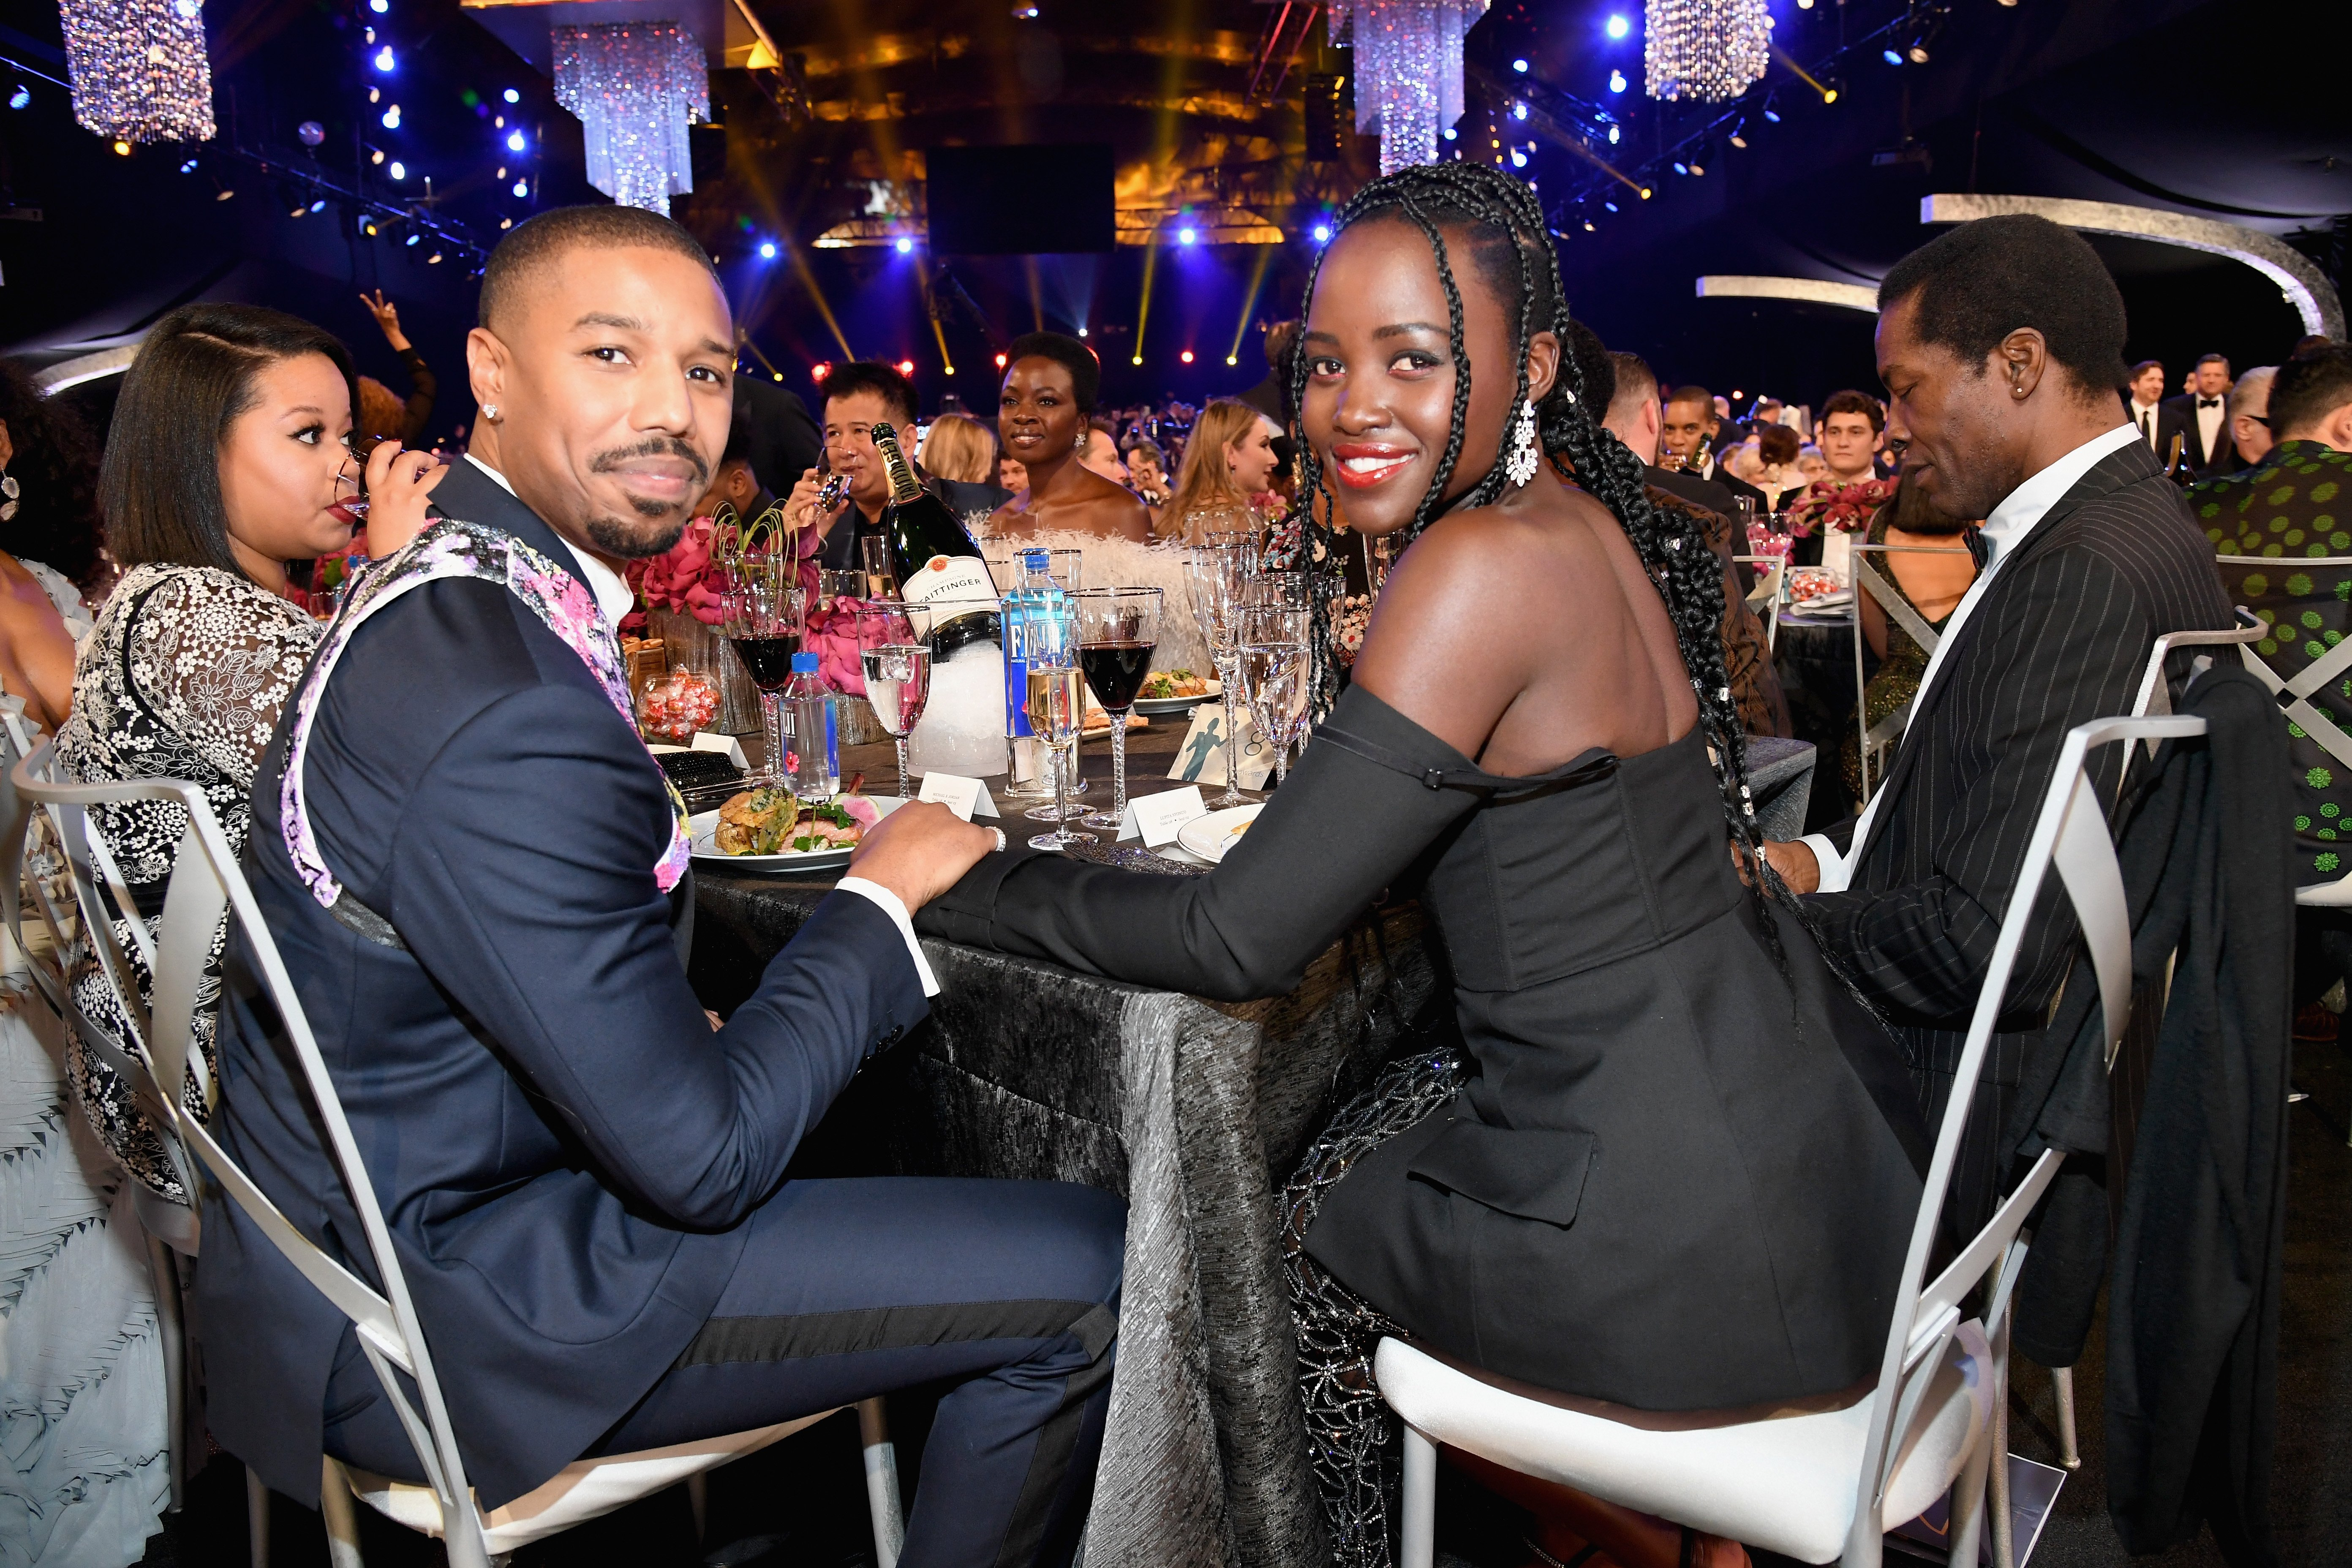 Michael B Jordan and Lupita Nyong'o attend the Annual Screen Actors Guild Awards in Los Angeles on January 27, 2019 | Photo: Getty Images